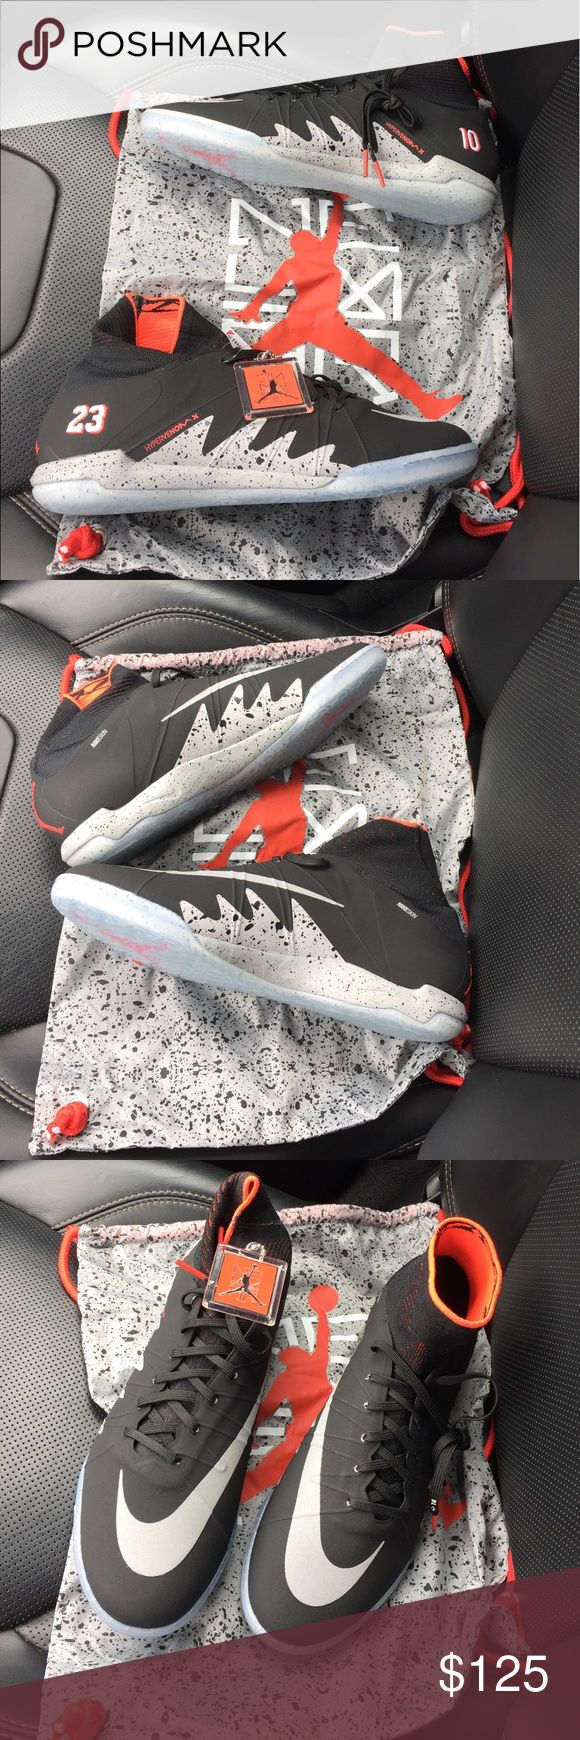 Super Rare Jordan x Neymar HypervenomX Sneakers These are incredibly rare and unworn. Even if you are not a soccer fan, it's hard to pass on these collaboration kicks between Jordan and Neymar!!! I do not have the box, but they come with Jordan hang tag and shoulder bag as pictured. These are still factory laces and haven't even been tried on. Go on Flight Club and price these!! This is a steal of a price. Make an offer!! Jordan Shoes Athletic Shoes